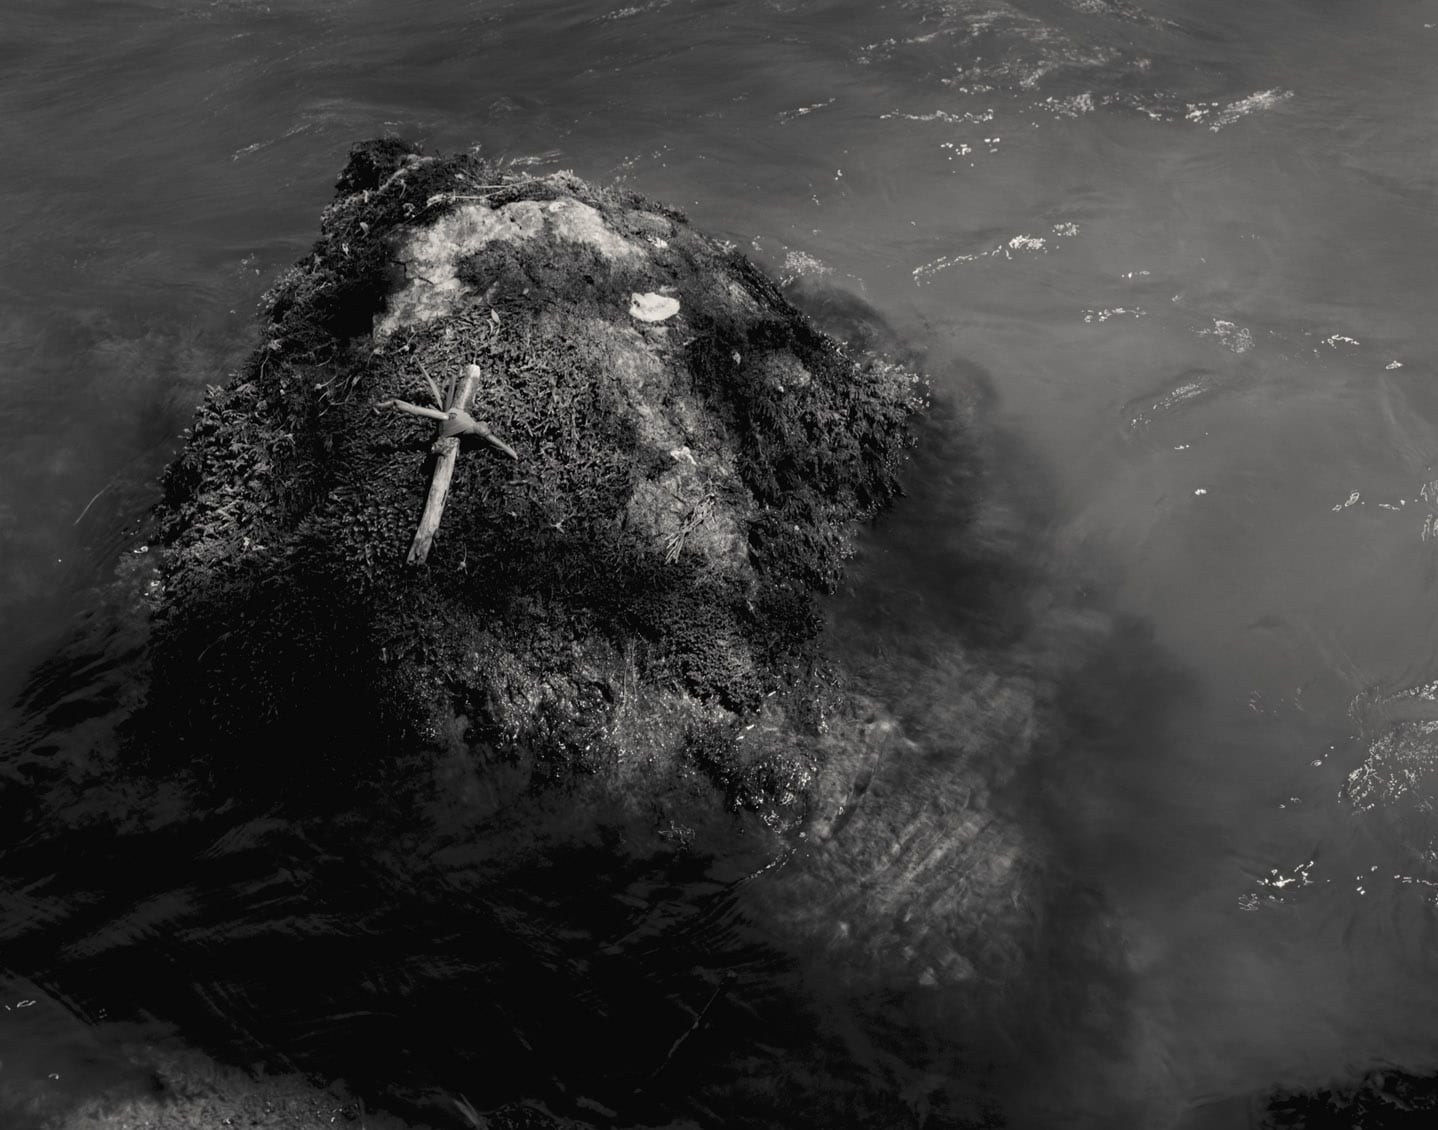 Untitled 45-Ex Voto-Alys Tomlinson-black and white photography-ex voto cross on rock in water